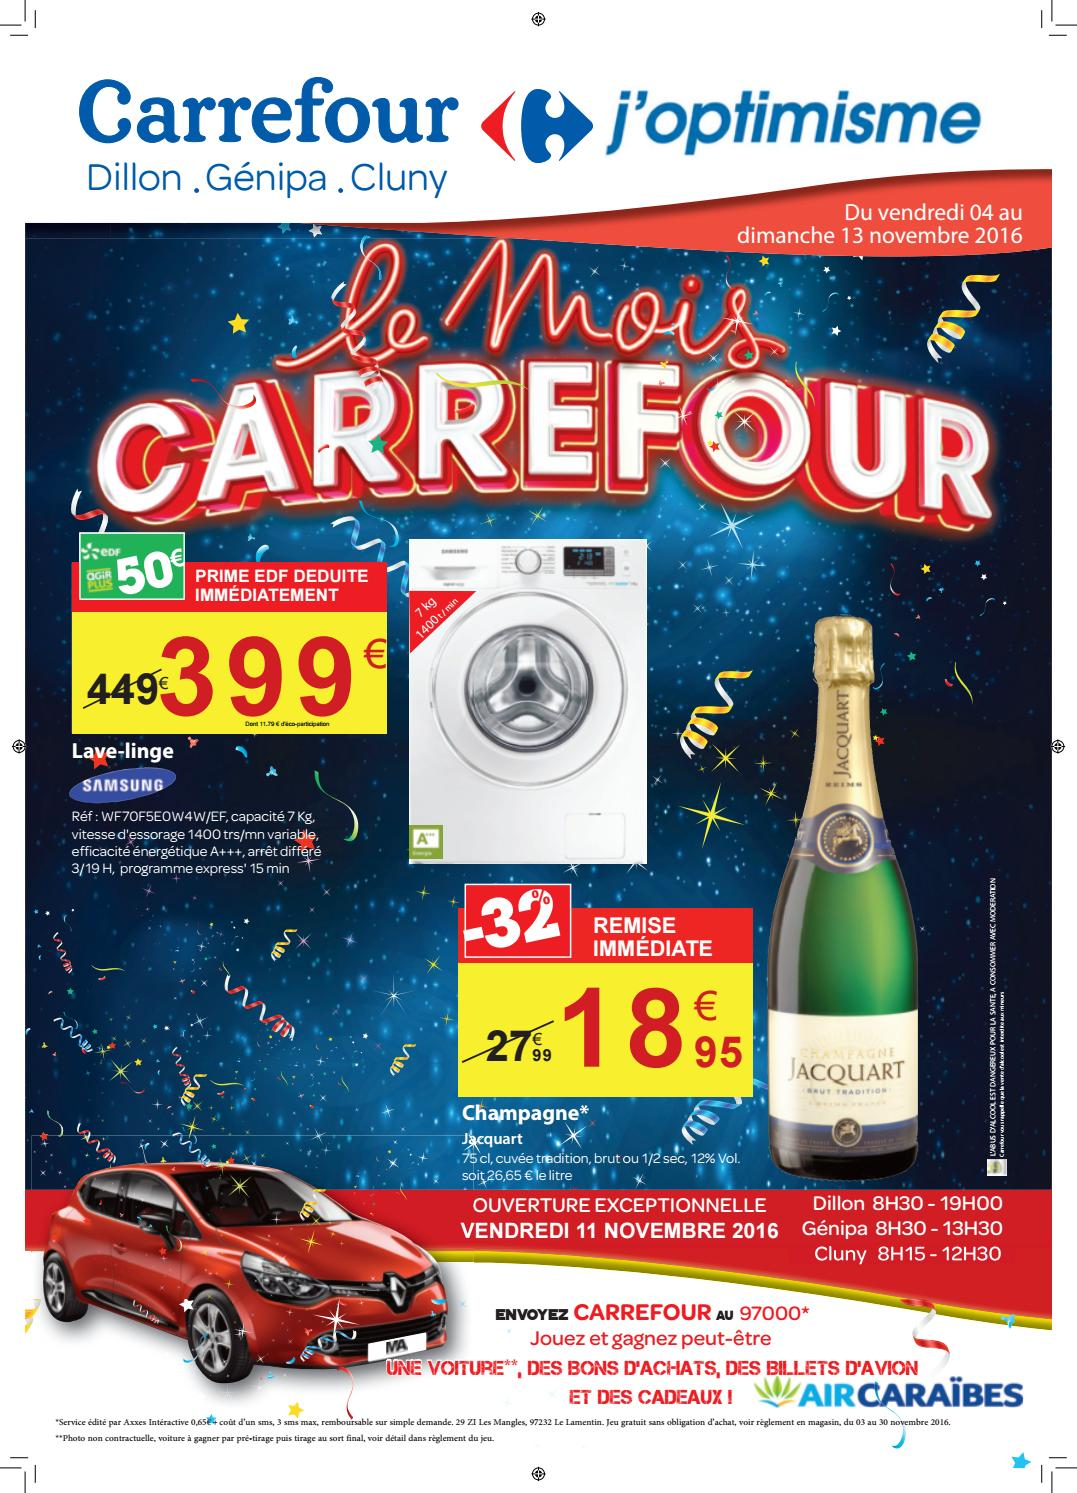 carrefour mois carrefour du 04 au 13 novembre 2016 martinique by momentum m dia issuu. Black Bedroom Furniture Sets. Home Design Ideas